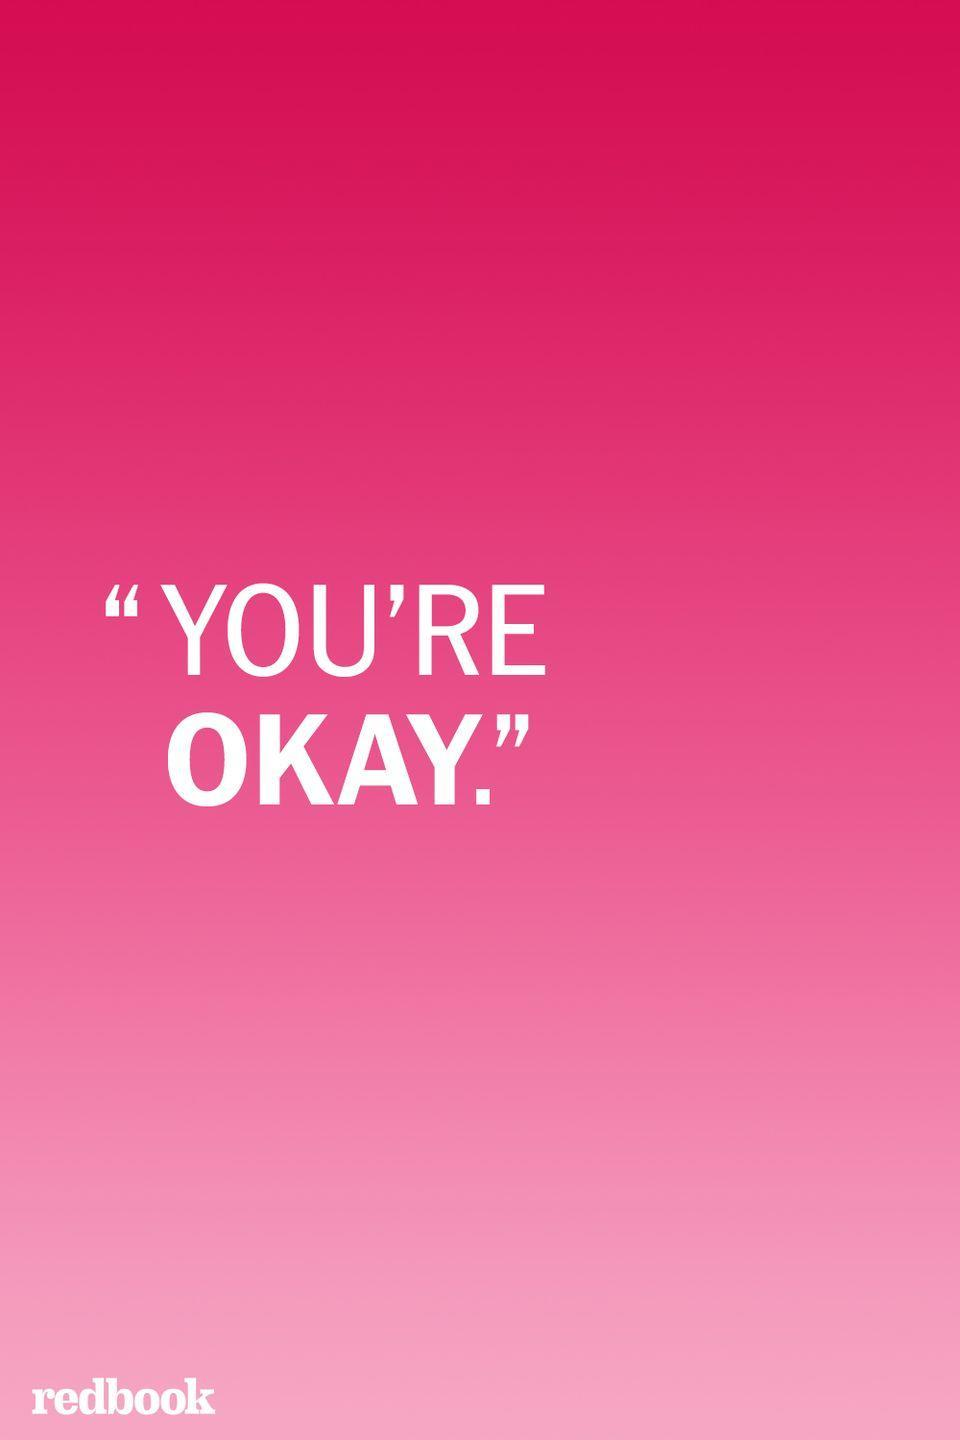 """<p>When a child is upset, don't be too quick to immediate pointing out that everything is """"okay""""—first, make sure they know their feelings are valid. """"Your kid is crying because he's not okay. Your job is to help him understand and deal with his emotions, not discount them,"""" Jenn Berman, Psy.D., author of <em>The A to Z Guide to Raising Happy, Confident Kids </em>told <em><a href=""""https://www.parents.com/parenting/better-parenting/advice/10-things-you-should-never-say-to-your-kids/"""" rel=""""nofollow noopener"""" target=""""_blank"""" data-ylk=""""slk:Parents"""" class=""""link rapid-noclick-resp"""">Parents</a>.</em> """"Try giving him a hug and acknowledging what he's feeling by saying something like, 'That was a scary fall.' Then ask whether he'd like a bandage or a kiss (or both),"""" Berman suggests.<br></p>"""